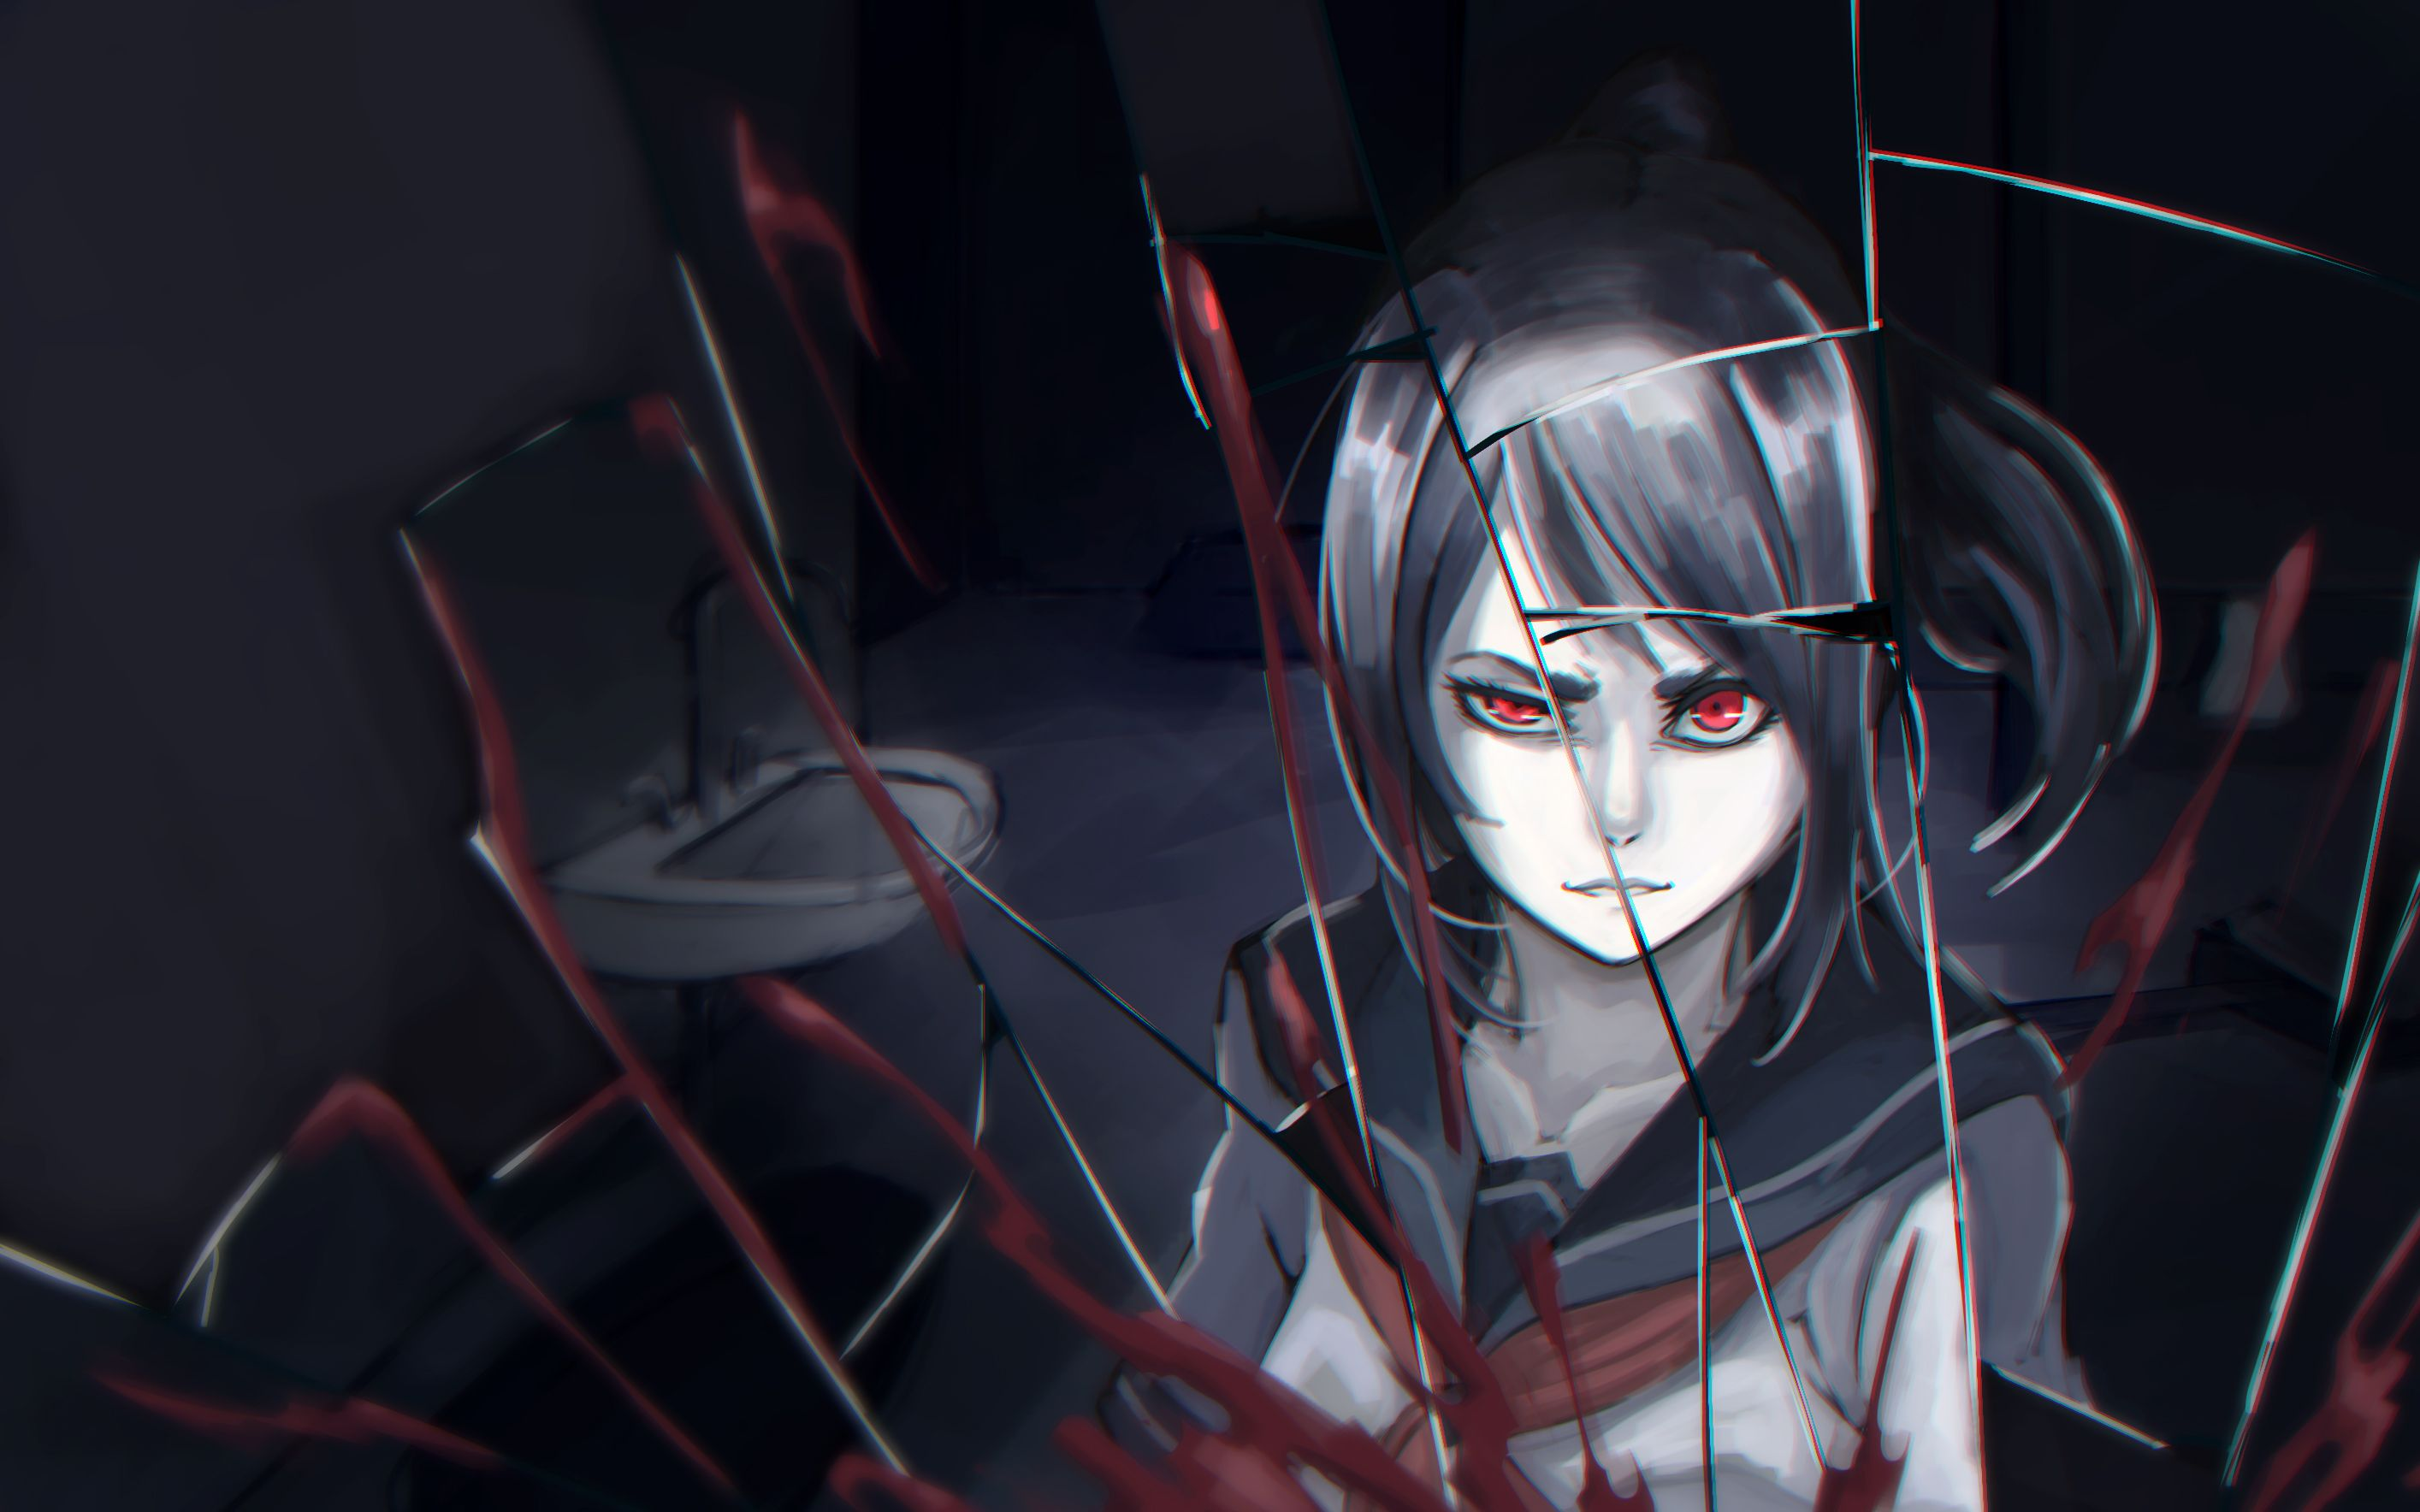 Yandere Wallpapers   Top Yandere Backgrounds   WallpaperAccess 2829x1768